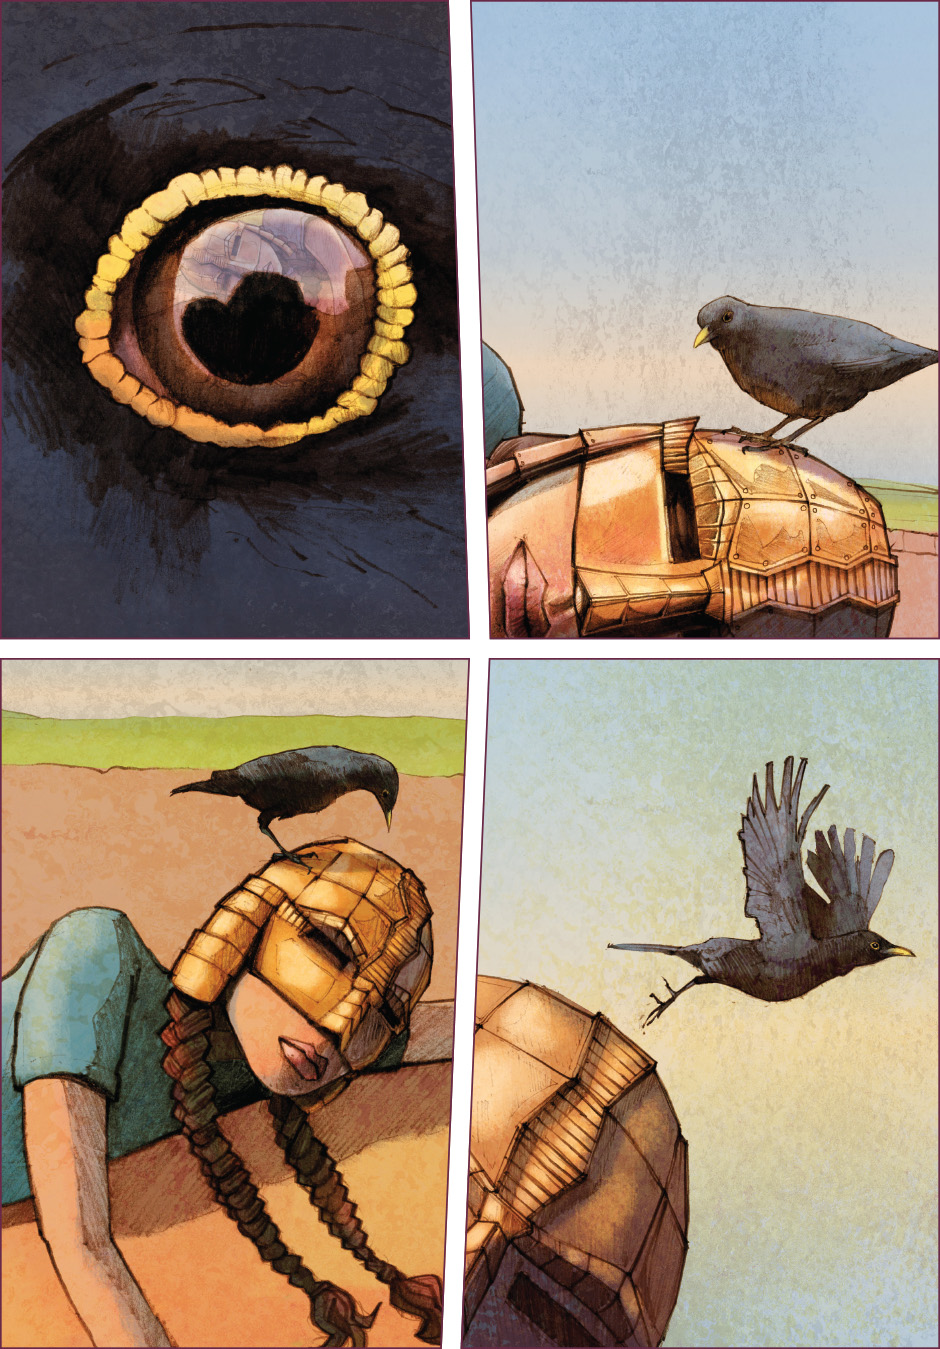 Lian Webcomic, The Tree of Life, chapter 2. Ousel looking at Lian